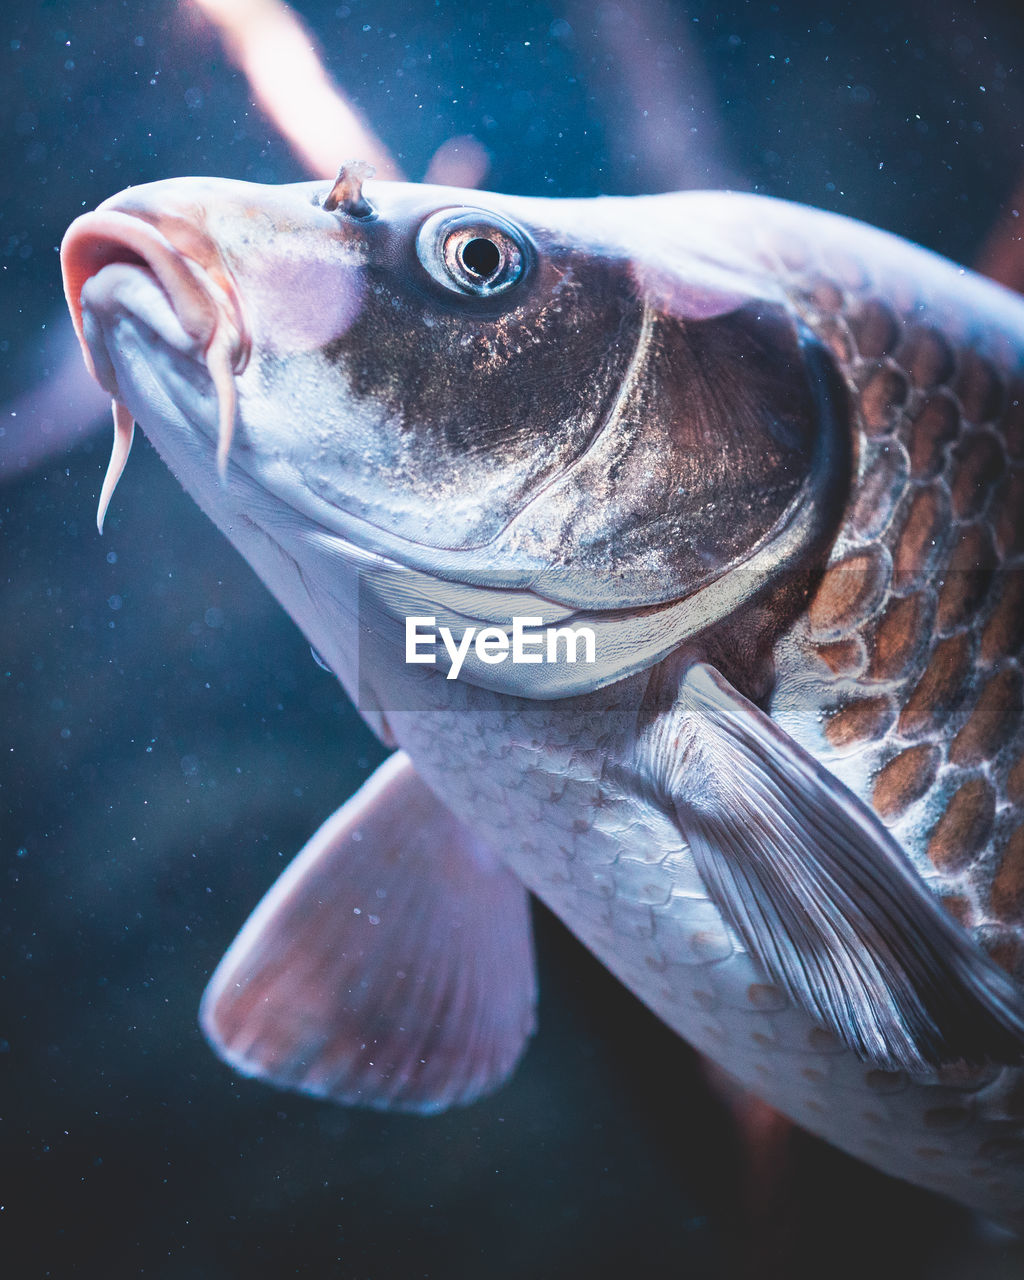 fish, animal, vertebrate, animal themes, water, animals in the wild, sea, animal wildlife, sea life, marine, close-up, seafood, one animal, no people, swimming, underwater, freshness, glass - material, transparent, outdoors, undersea, mouth open, animal eye